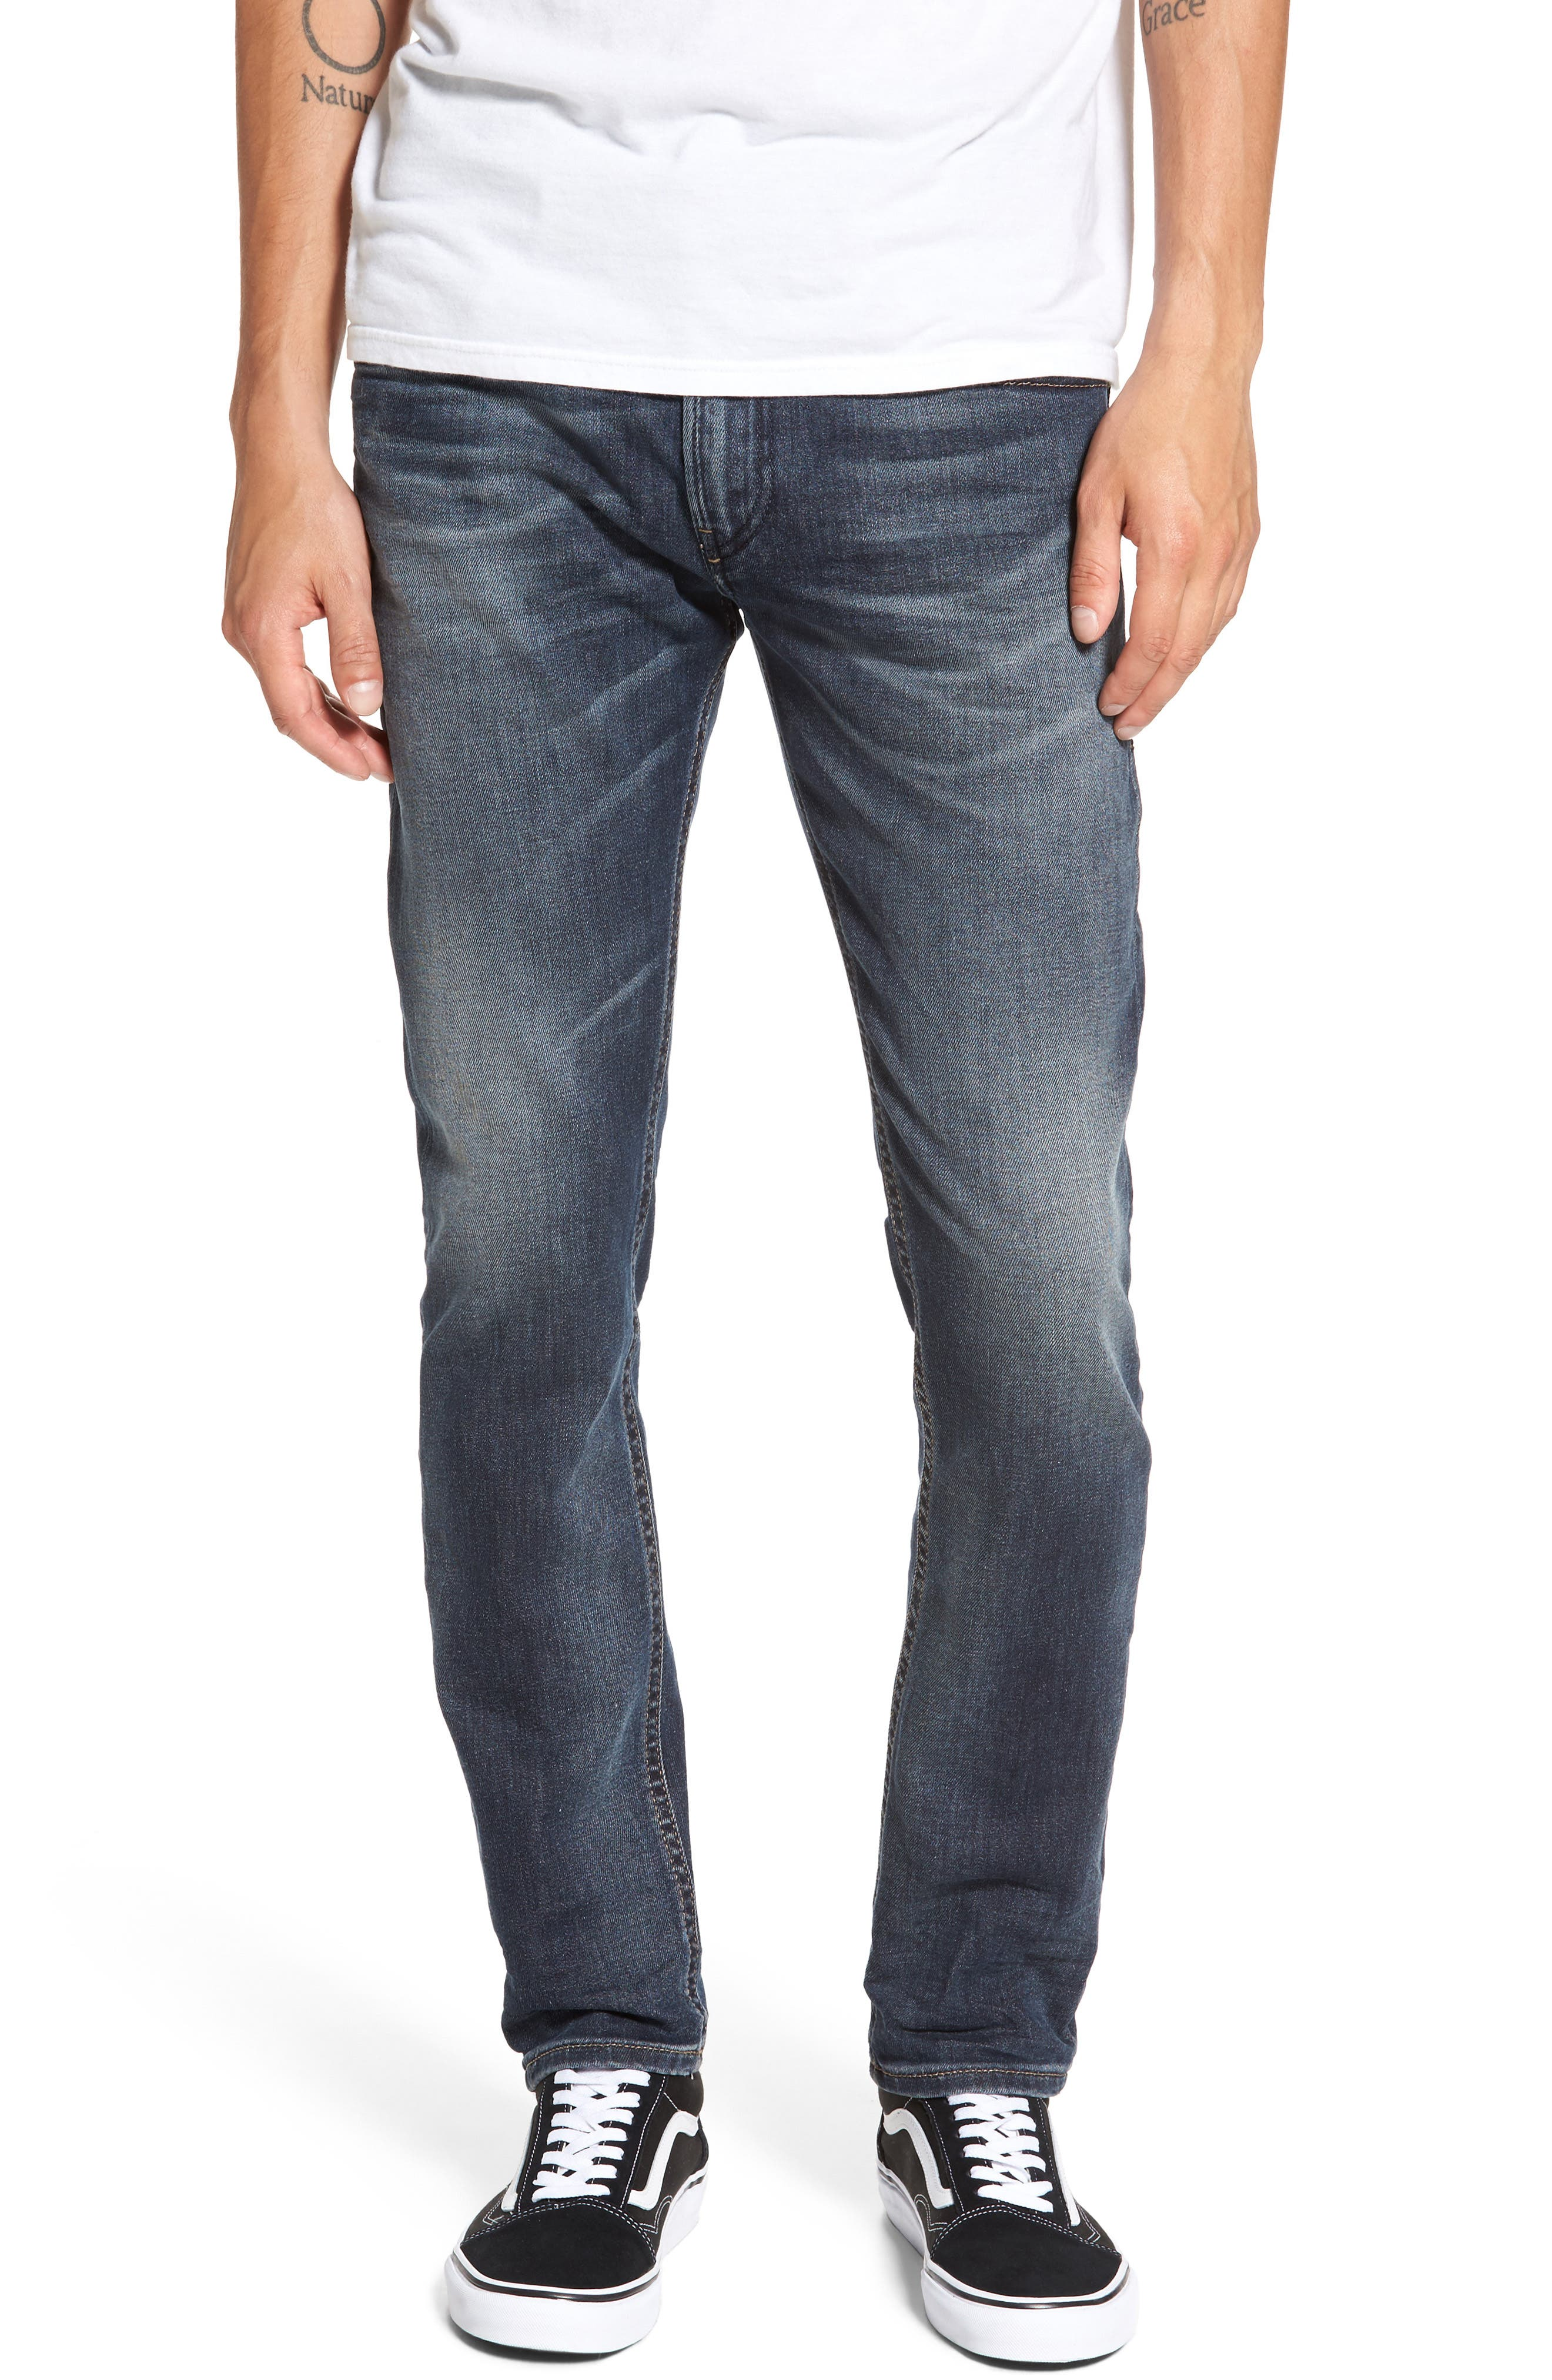 Thommer Slim Fit Jeans,                             Main thumbnail 1, color,                             400